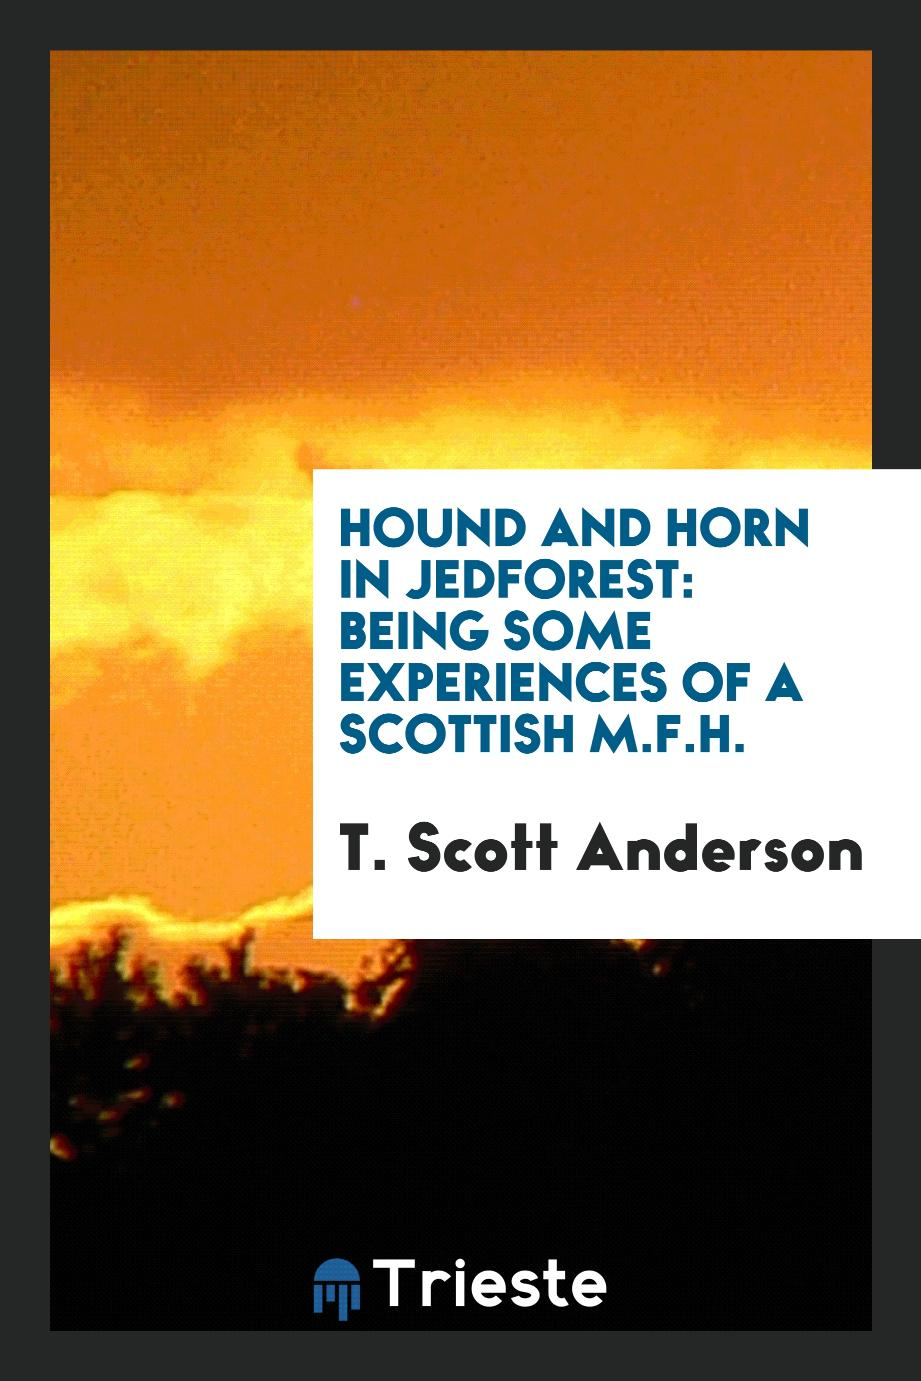 Hound and horn in Jedforest: being some experiences of a Scottish M.F.H.